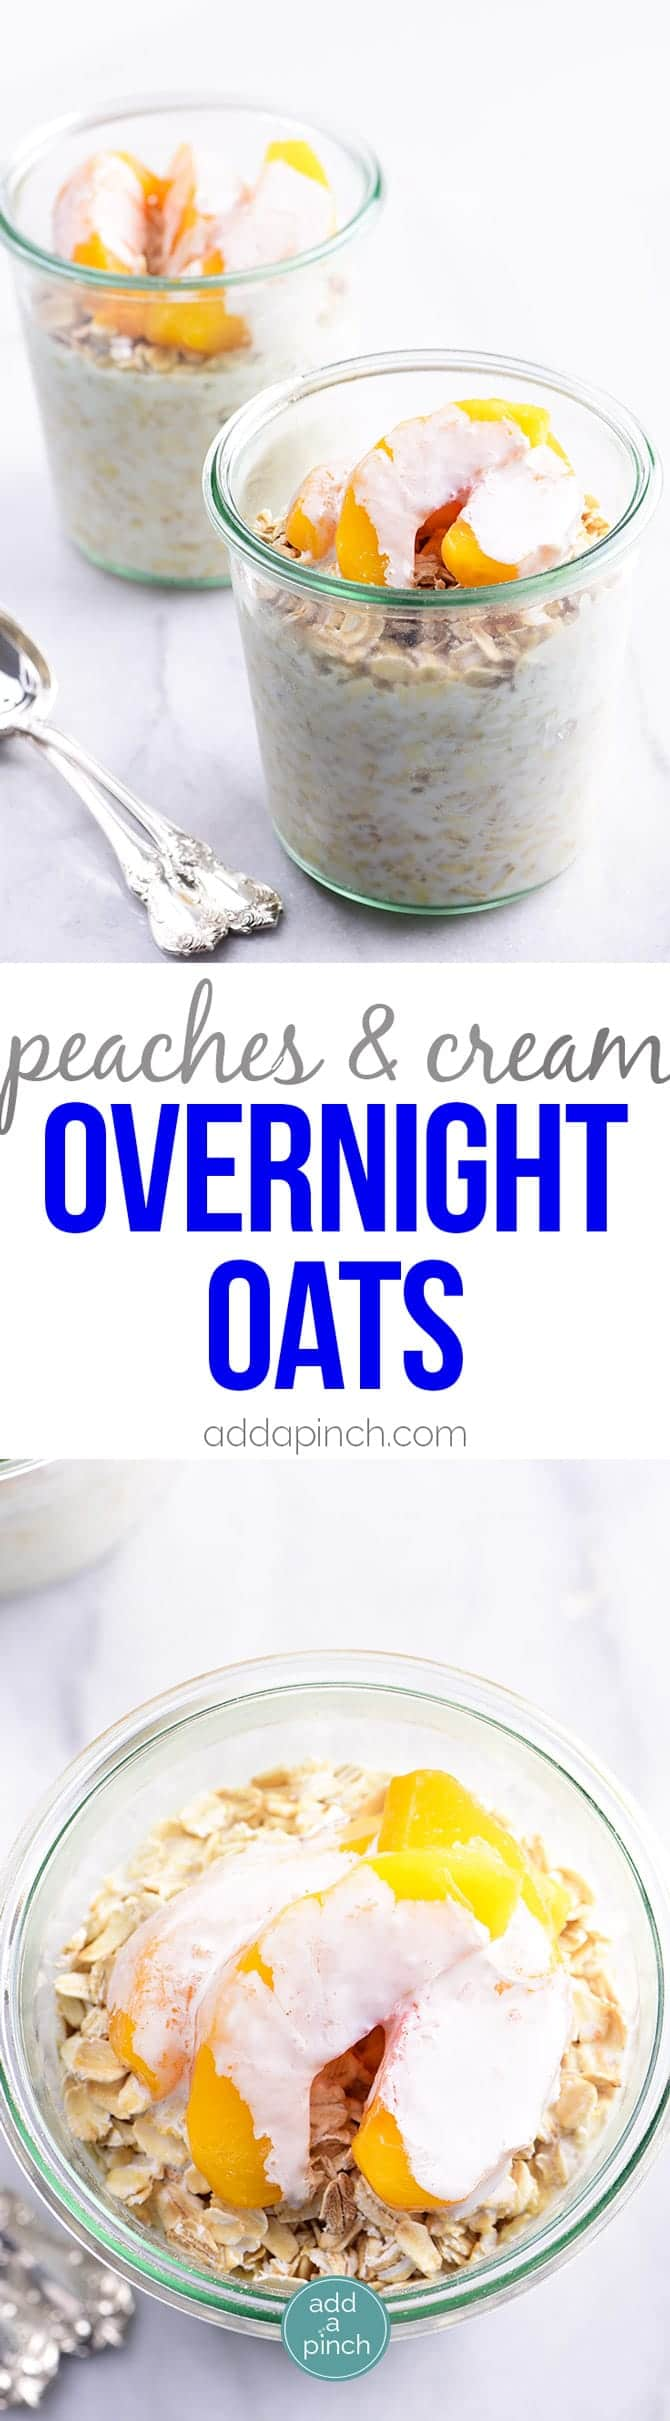 Peaches and Cream Overnight Oats Recipe - Peaches and Cream Overnight Oats make an easy and delicious breakfast or snack! Made with oats, peaches, and cream, this is a recipe perfect for busy mornings! // addapinch.com